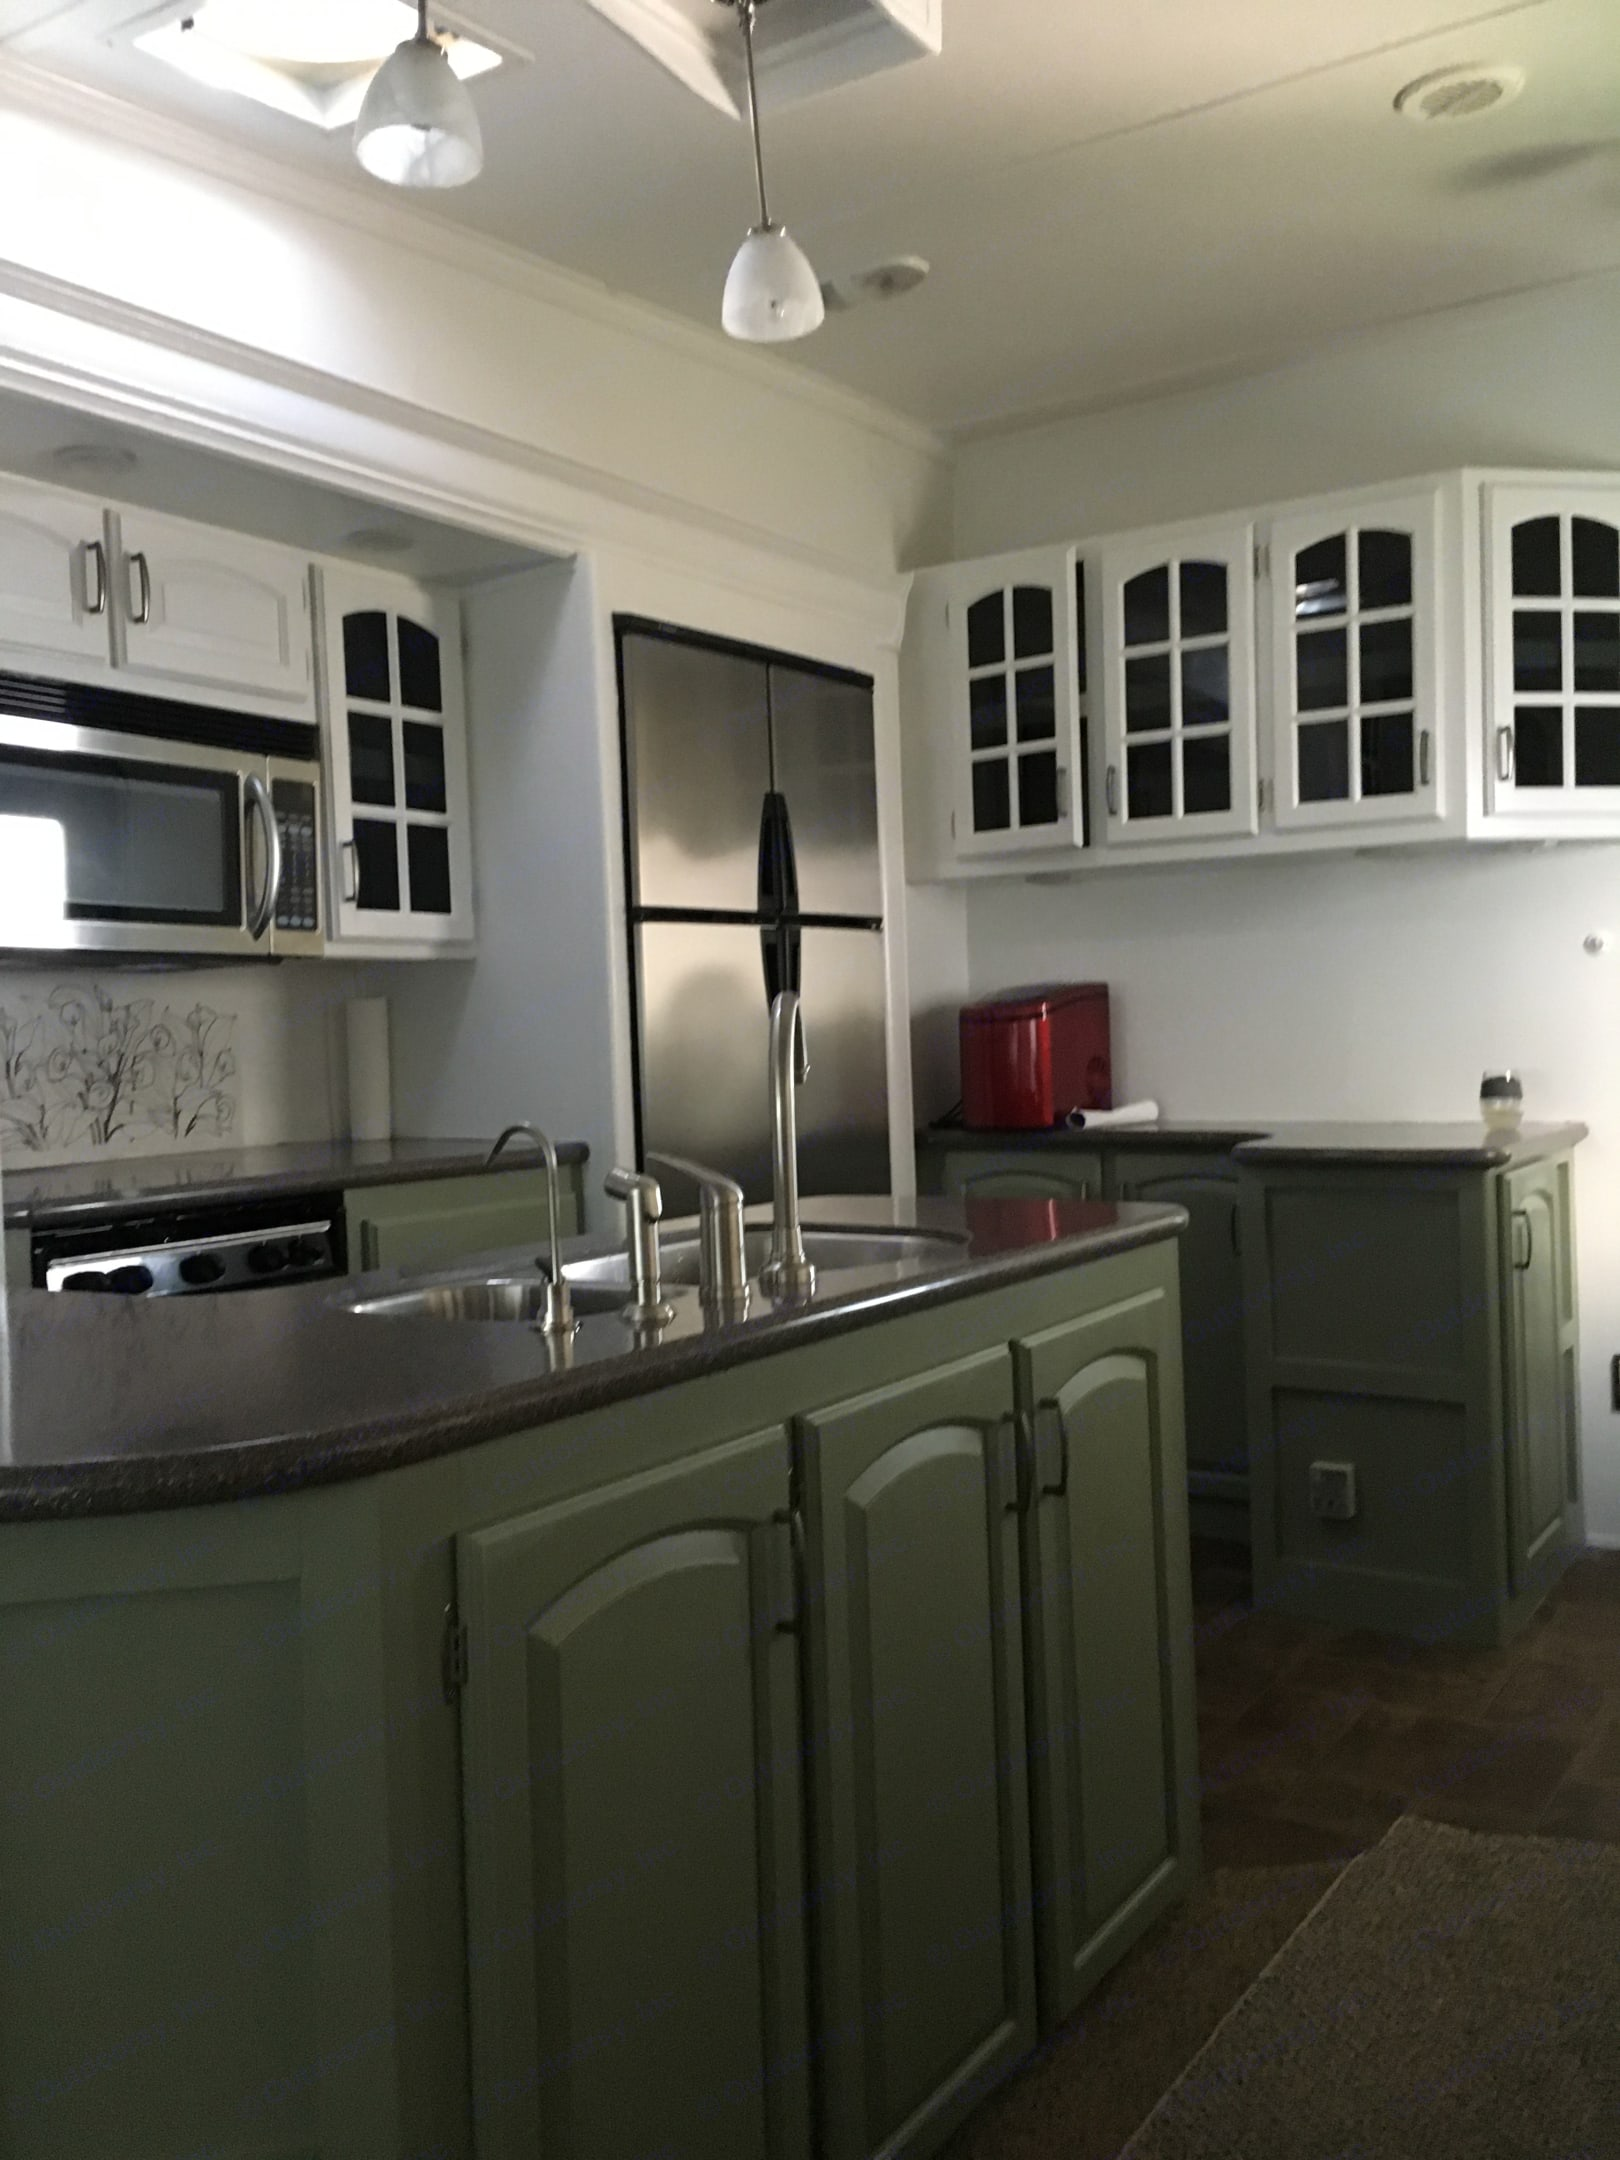 Kitchen with 4 door refrigerator, microwave/convection oven. Stove top/oven. Keystone Alpine 2010